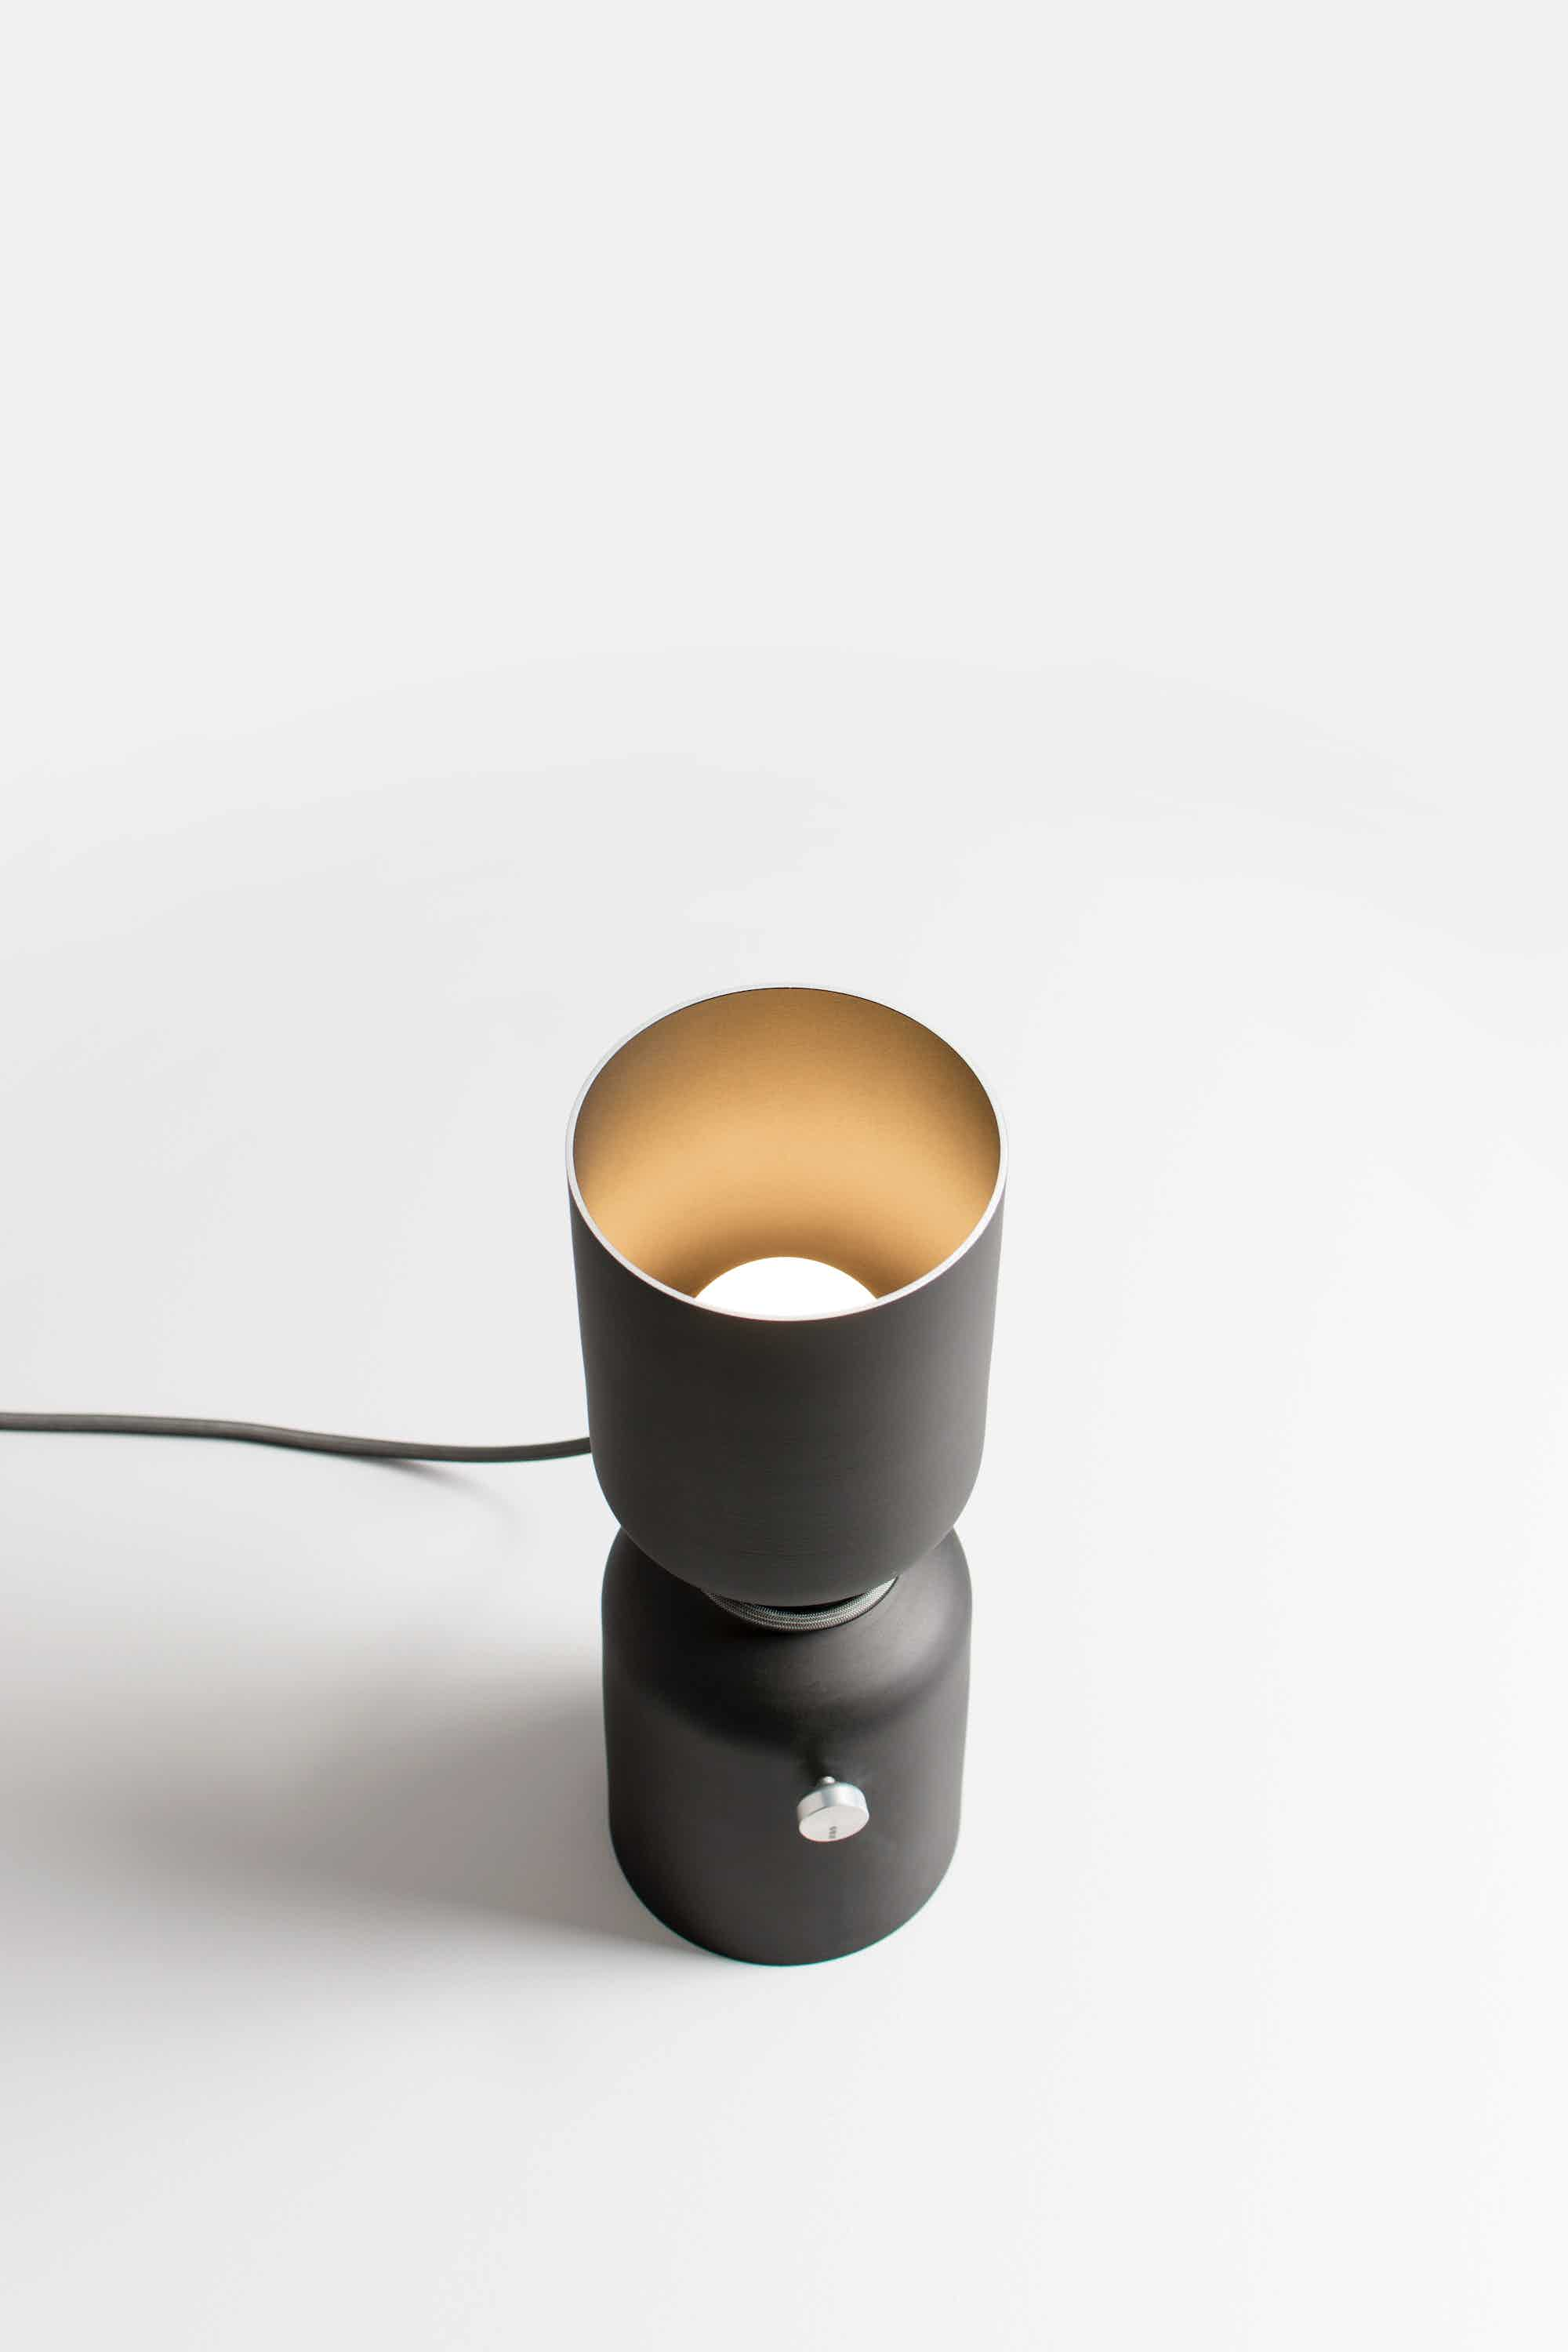 Andlight Spotlight Volumes Table lamp by lukas peet haute living